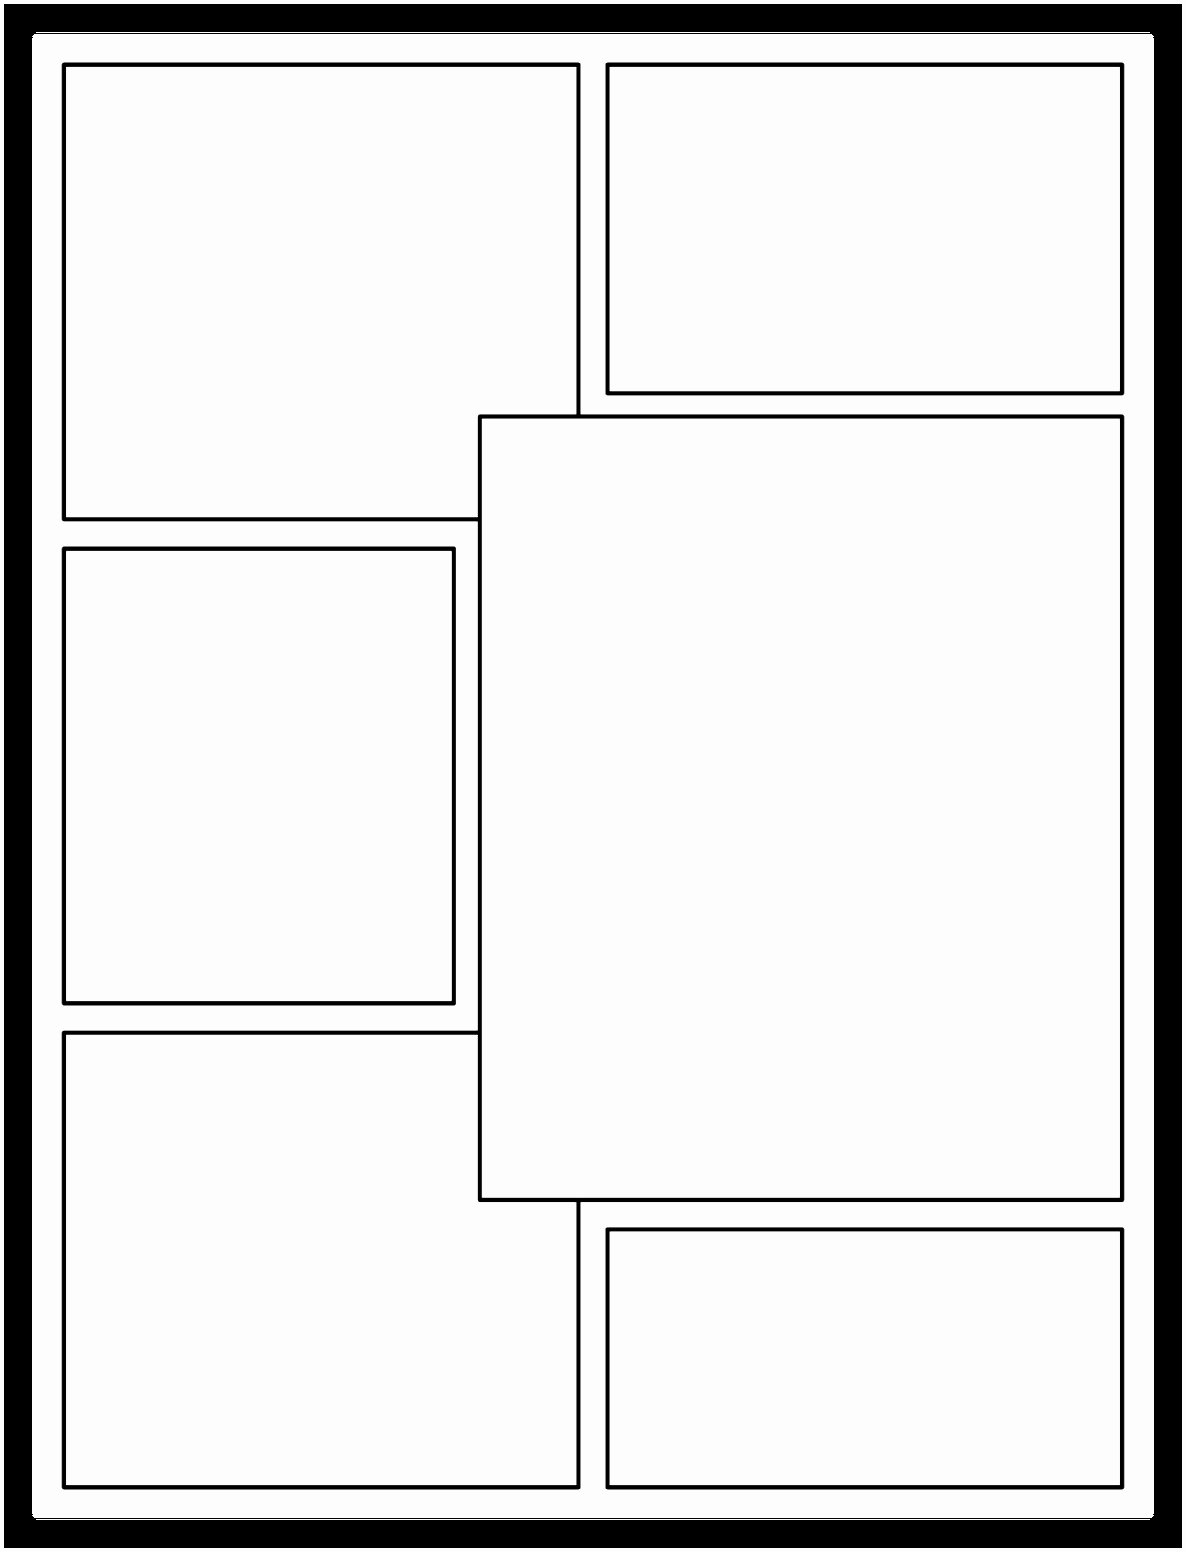 Comic Book Template Pdf Best Of 9 Printable Blank Ic Strip Template for Kids Iowui